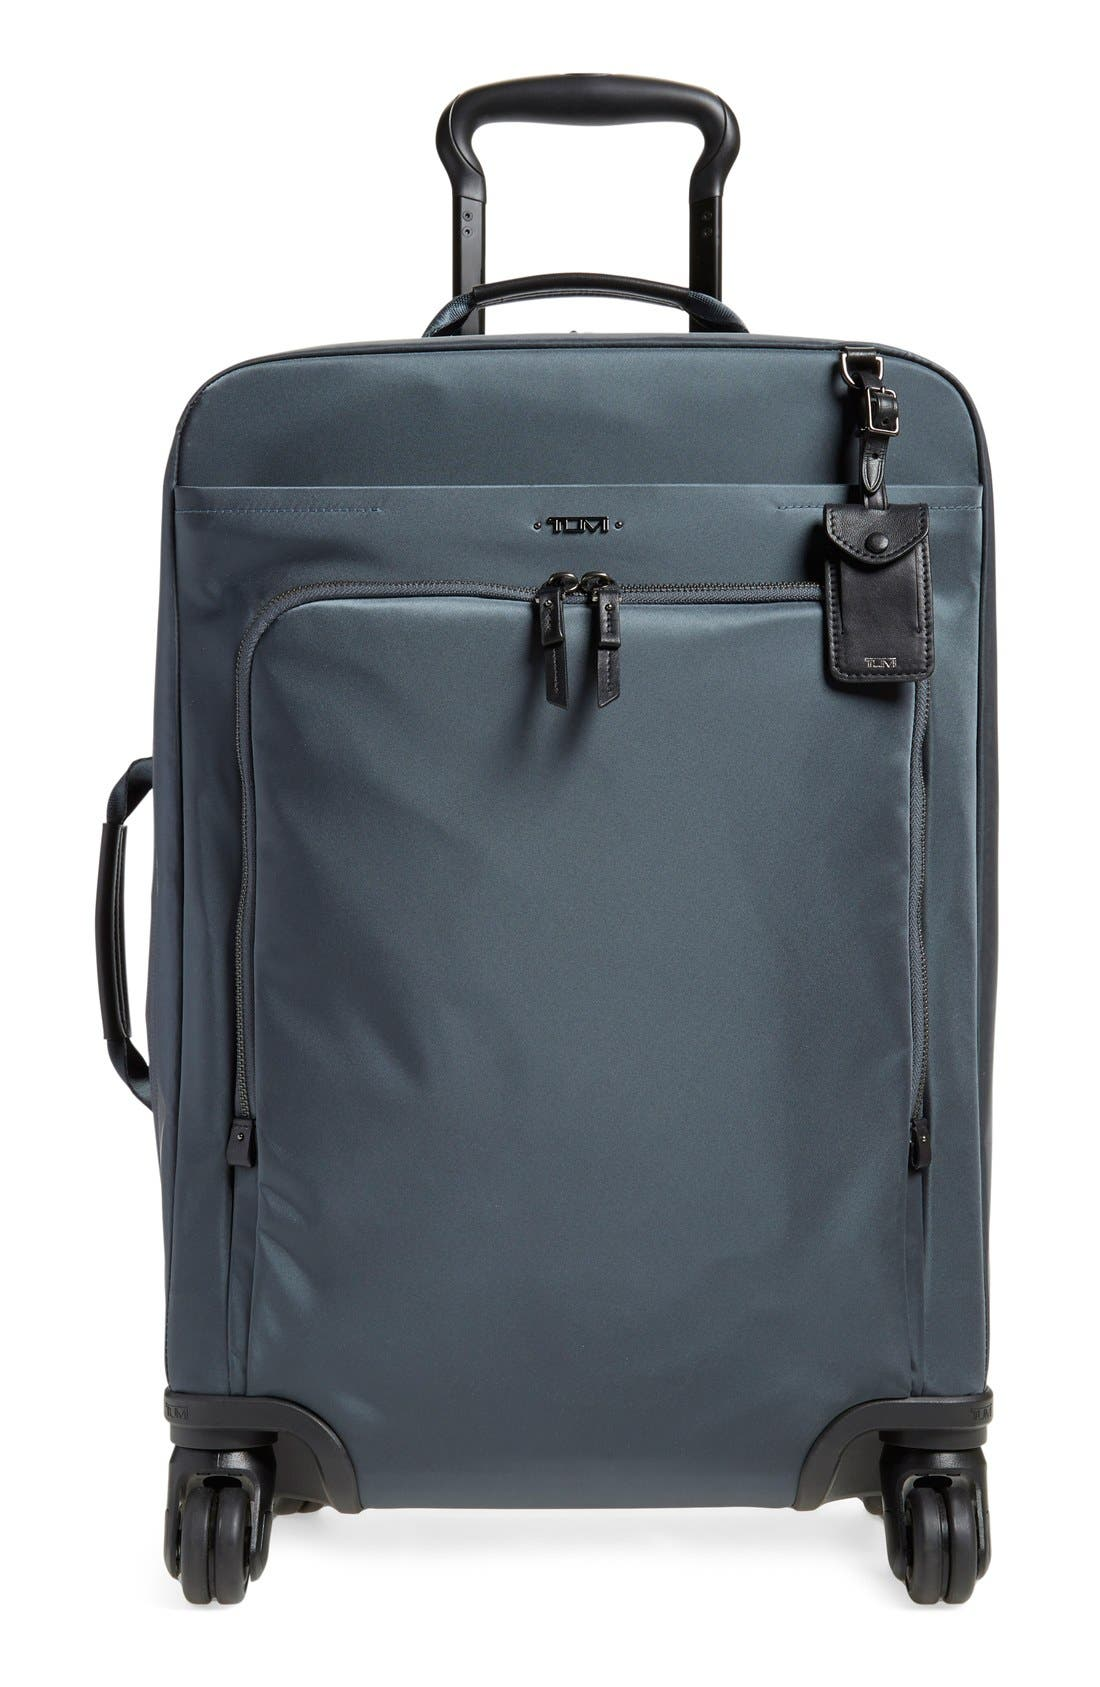 Tumi Voyageur - Super Léger 21-Inch International Carry-On